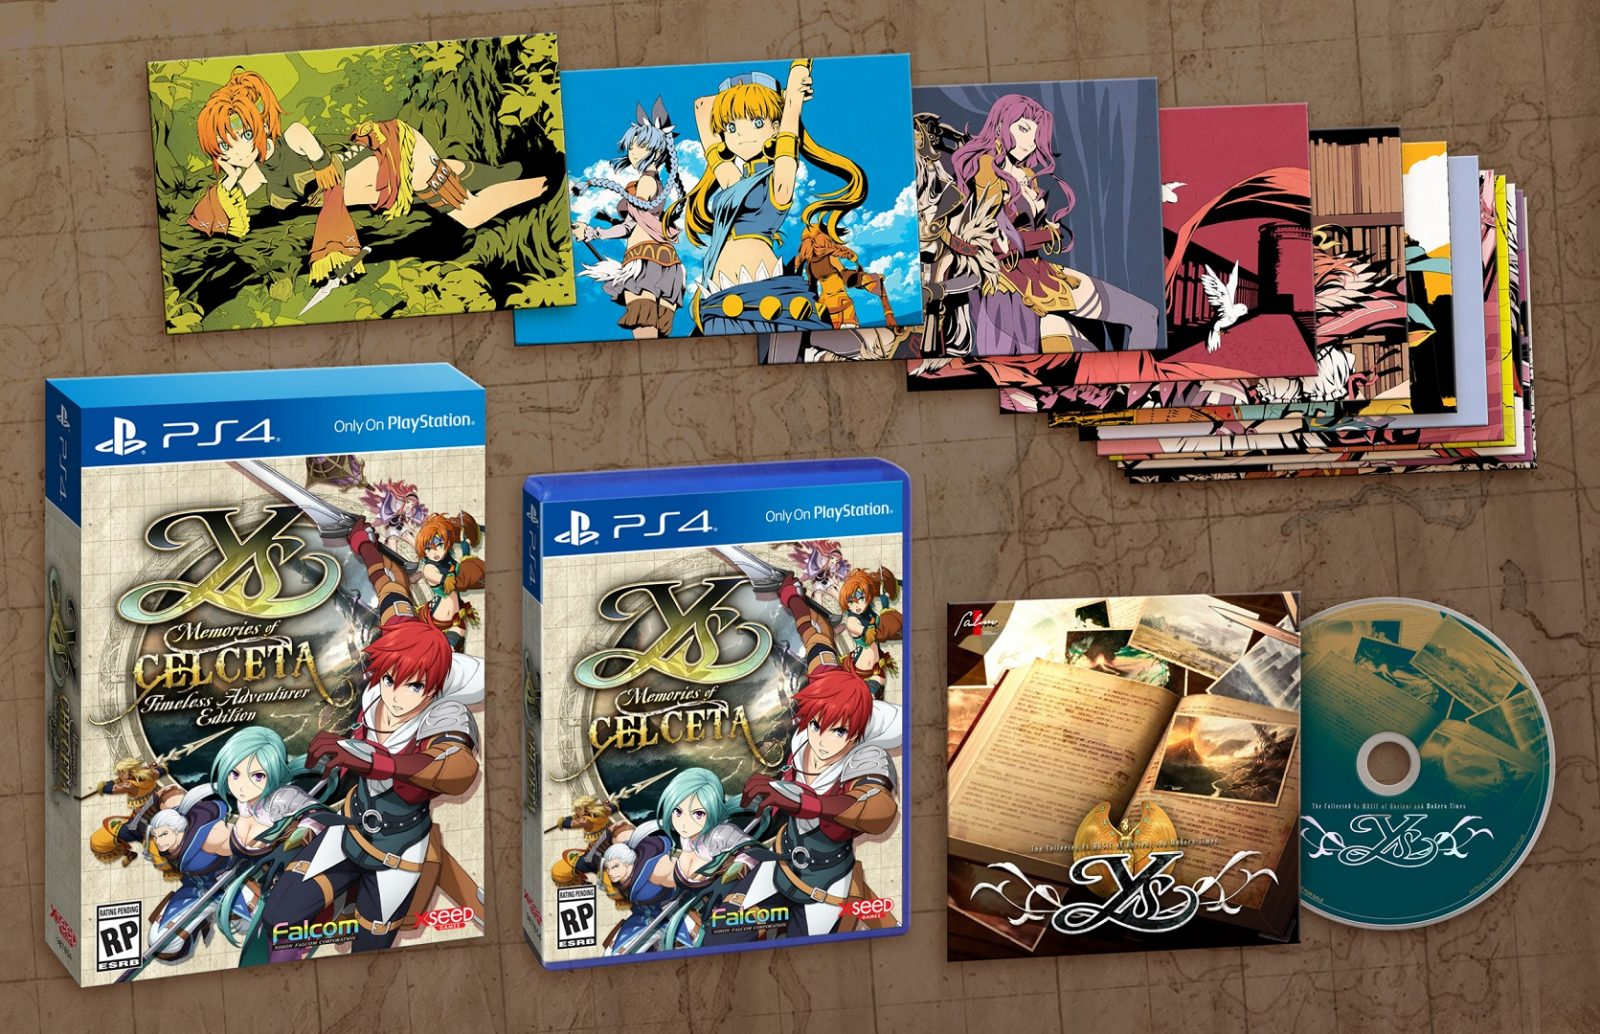 Ys: Memories of Celceta PS4 Remaster Heads West in Spring 2020